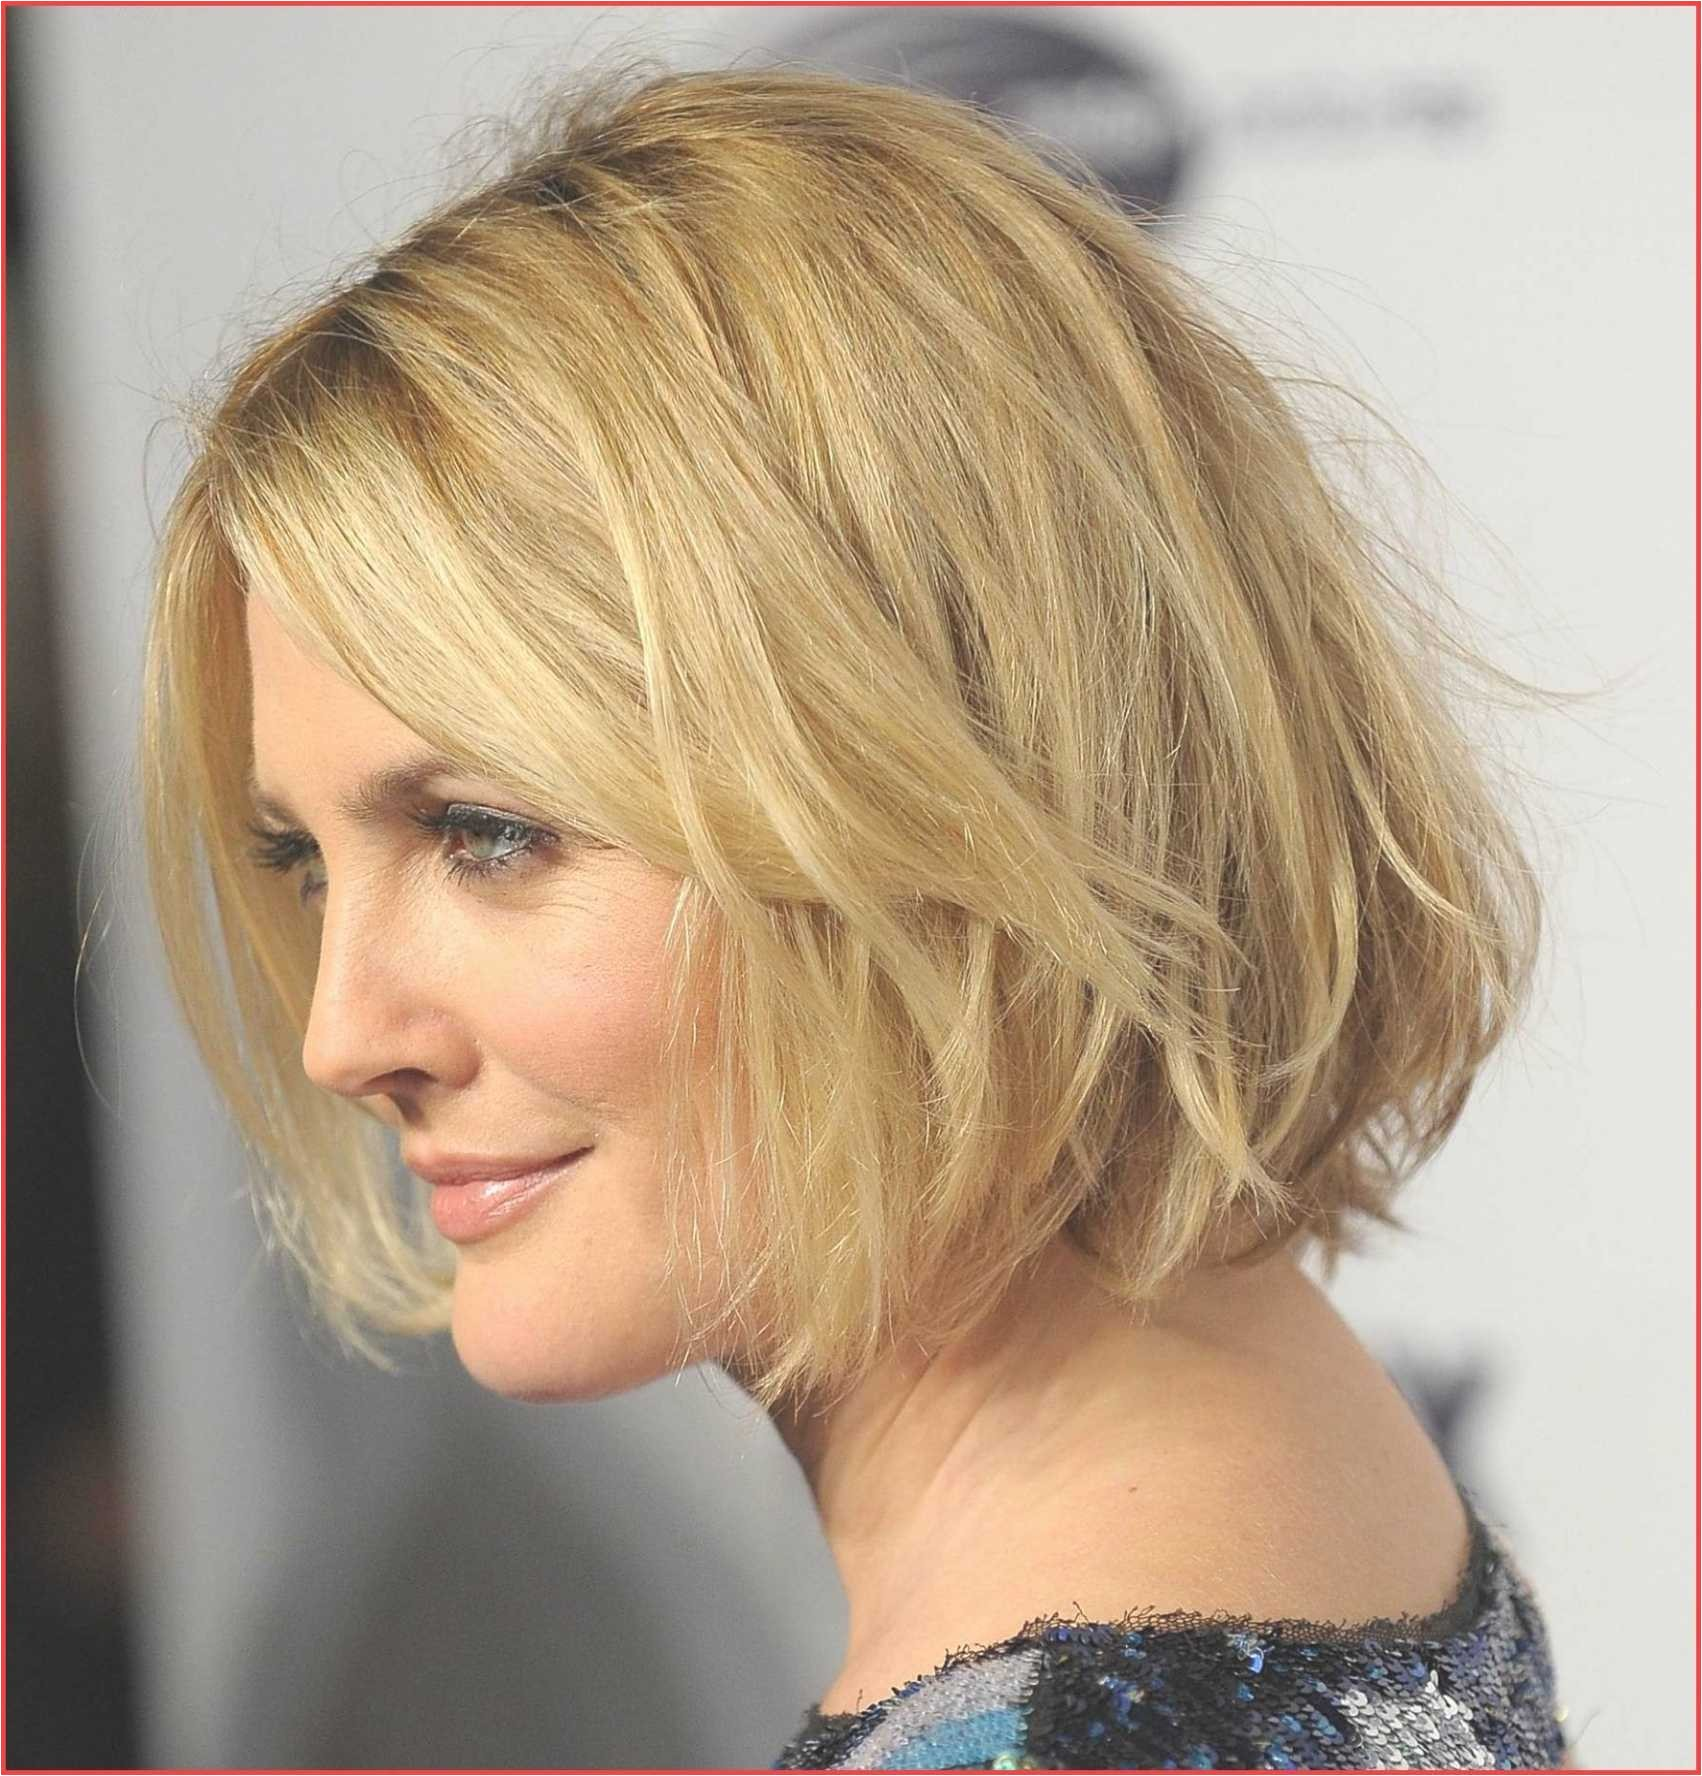 Hairstyles for Rough and Curly Hair Luxury Hairstyles for Frizzy Hair Medium Length